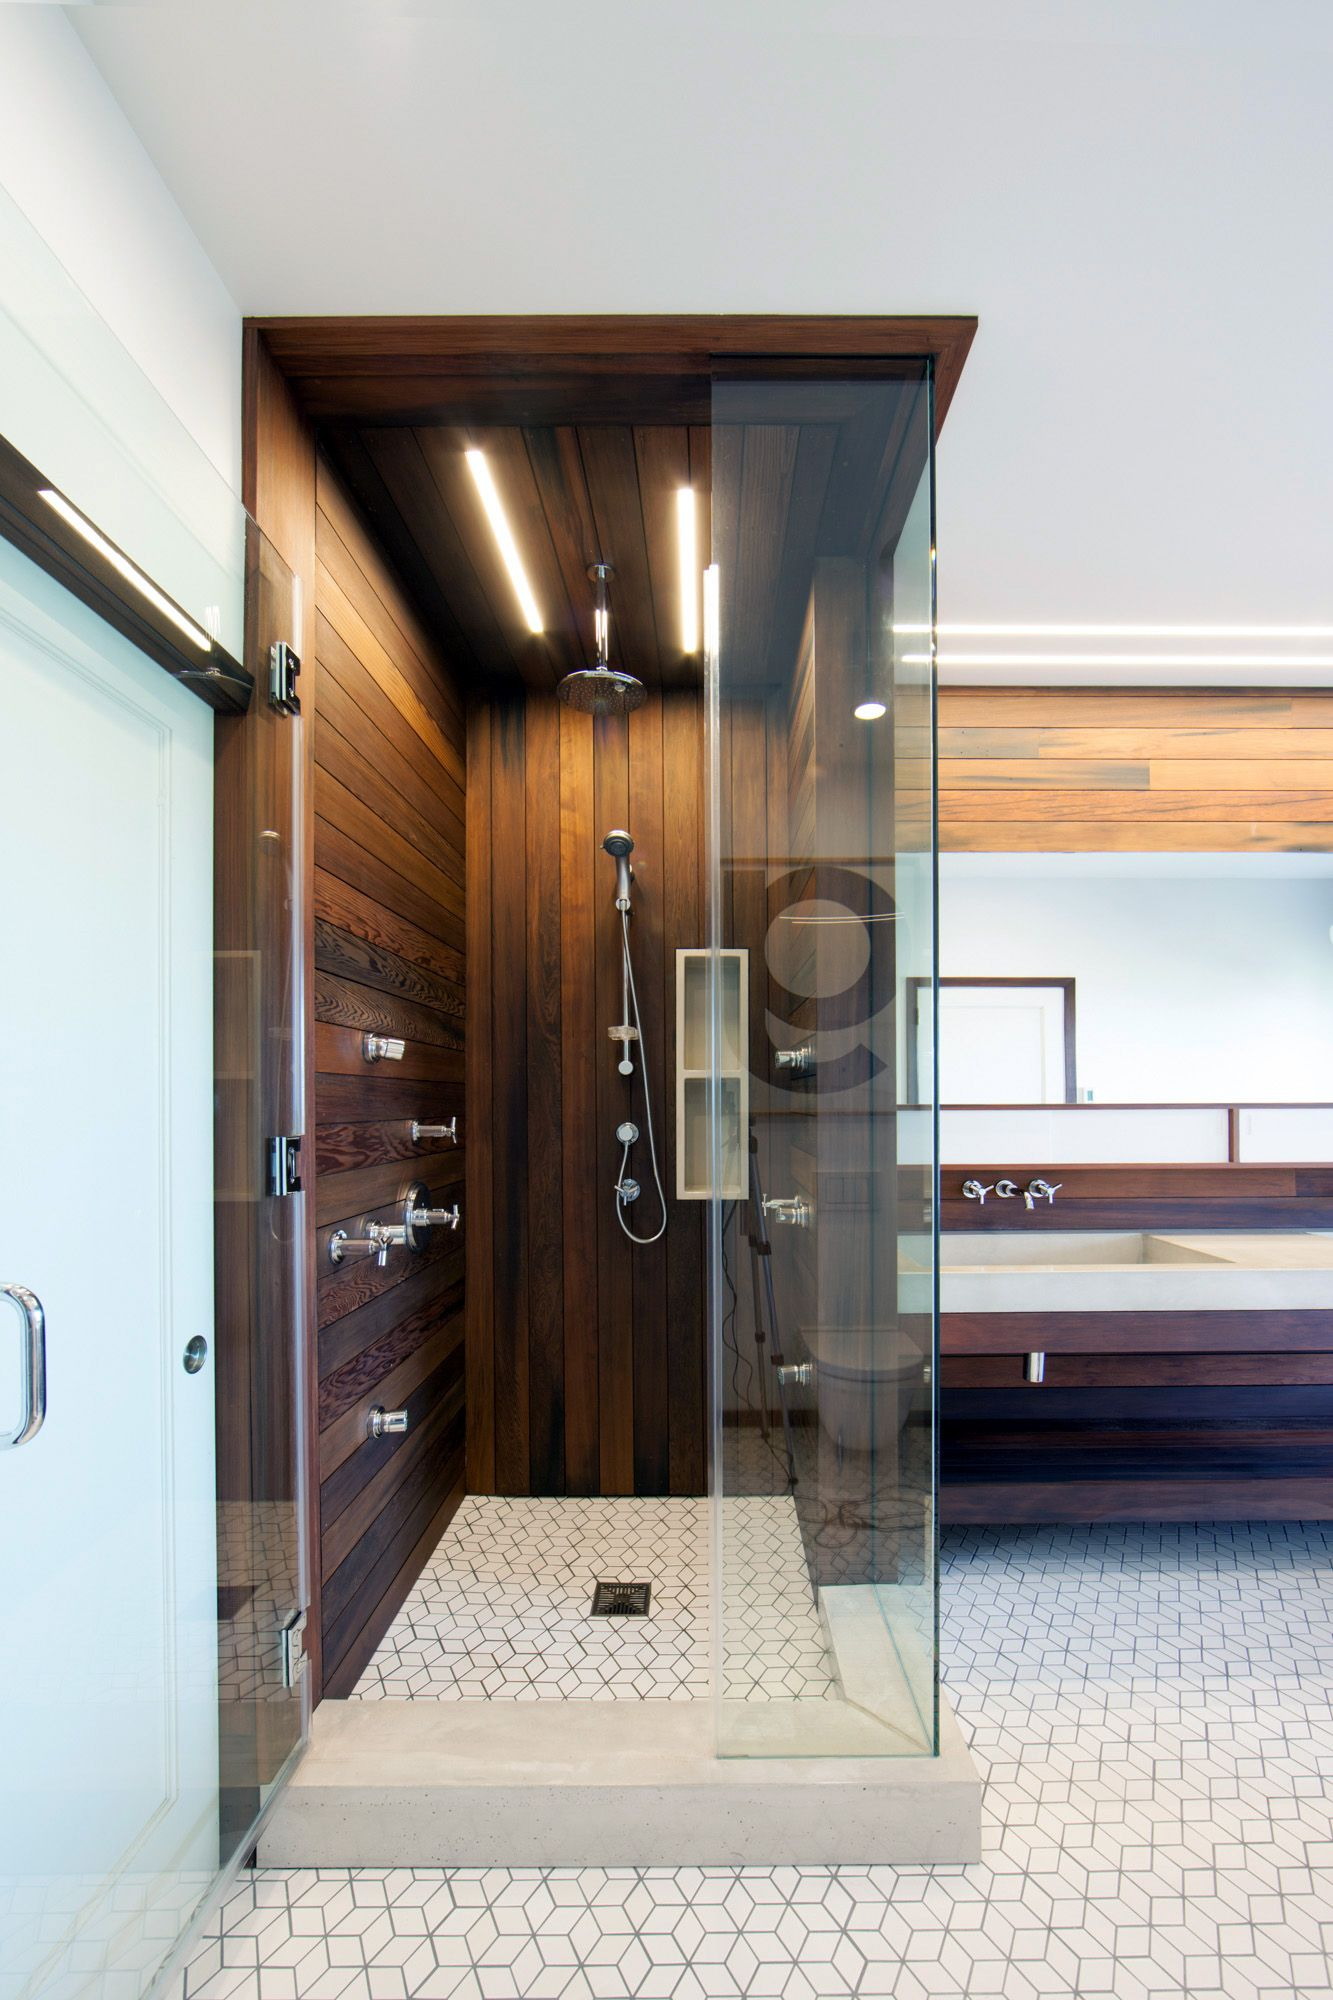 Bathroom Design San Francisco Stunning San Francisco Bathroom Design & Build Knife 12 & Saw  Arcson Design Ideas